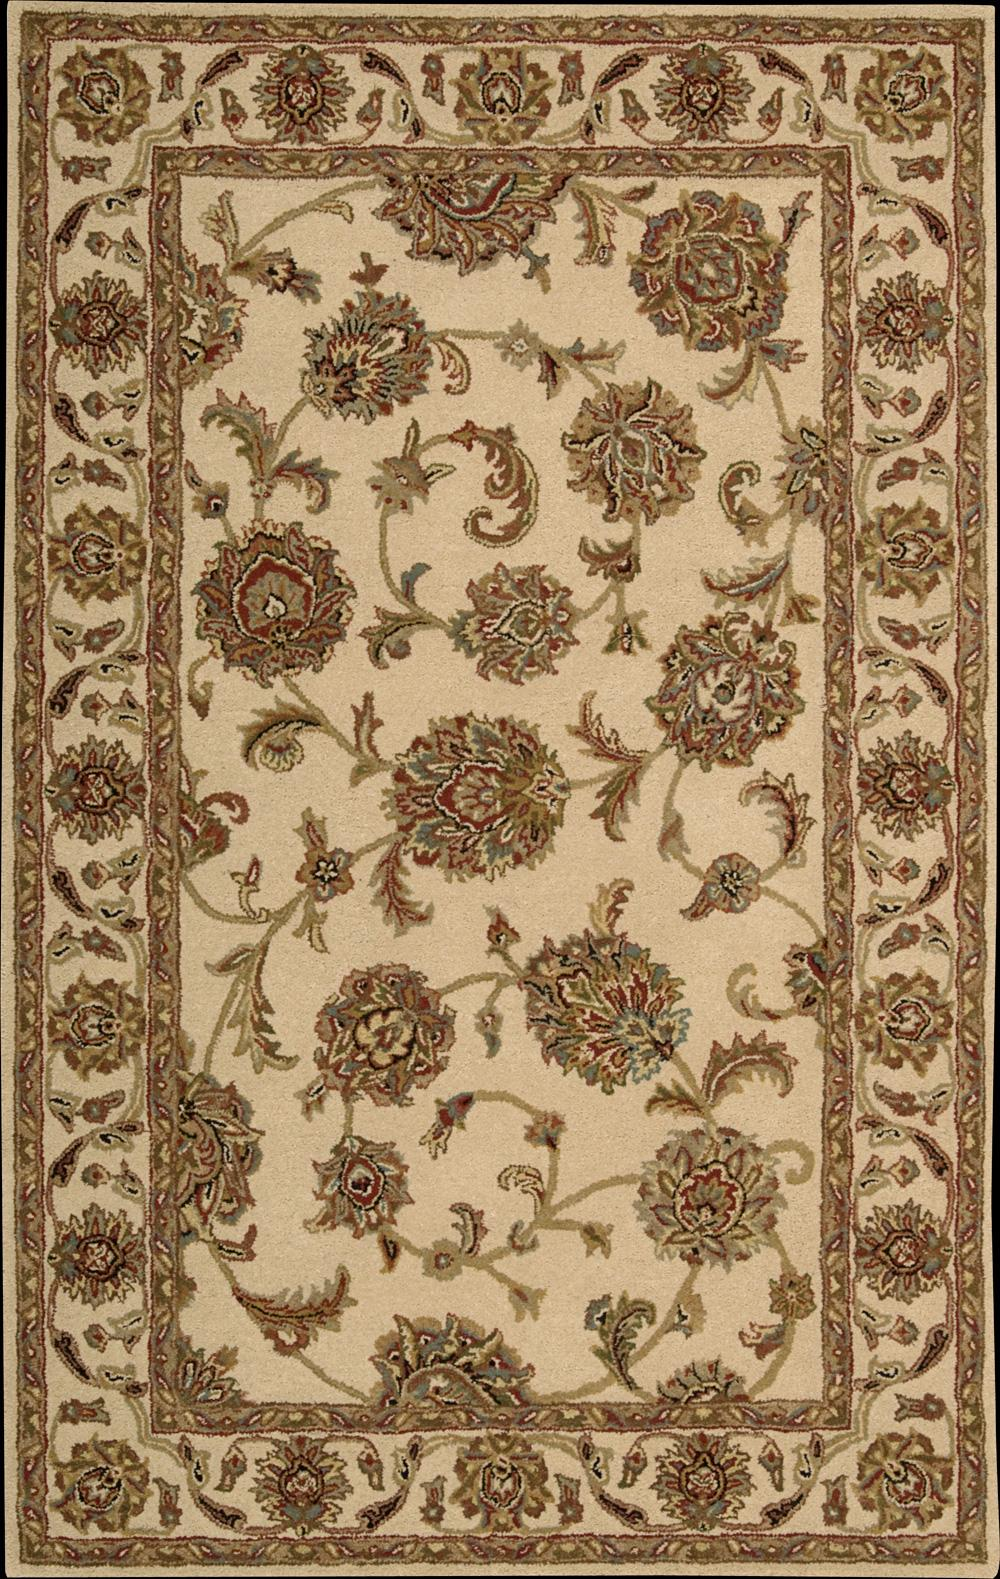 "Nourison India House Area Rug 8' x 10'6"" - Item Number: 41691"